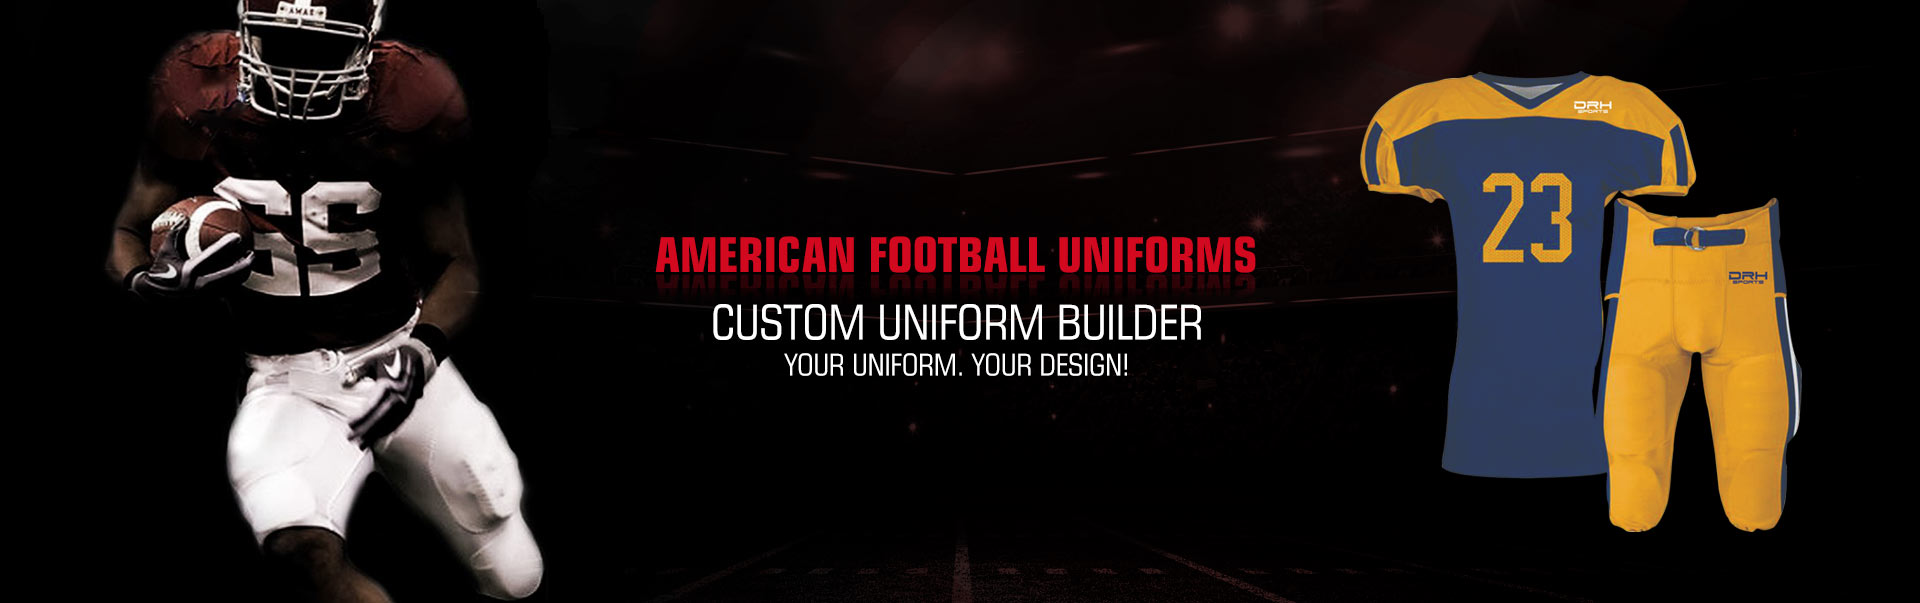 American Football Uniform Wholesaler, Suppliers in Lowell